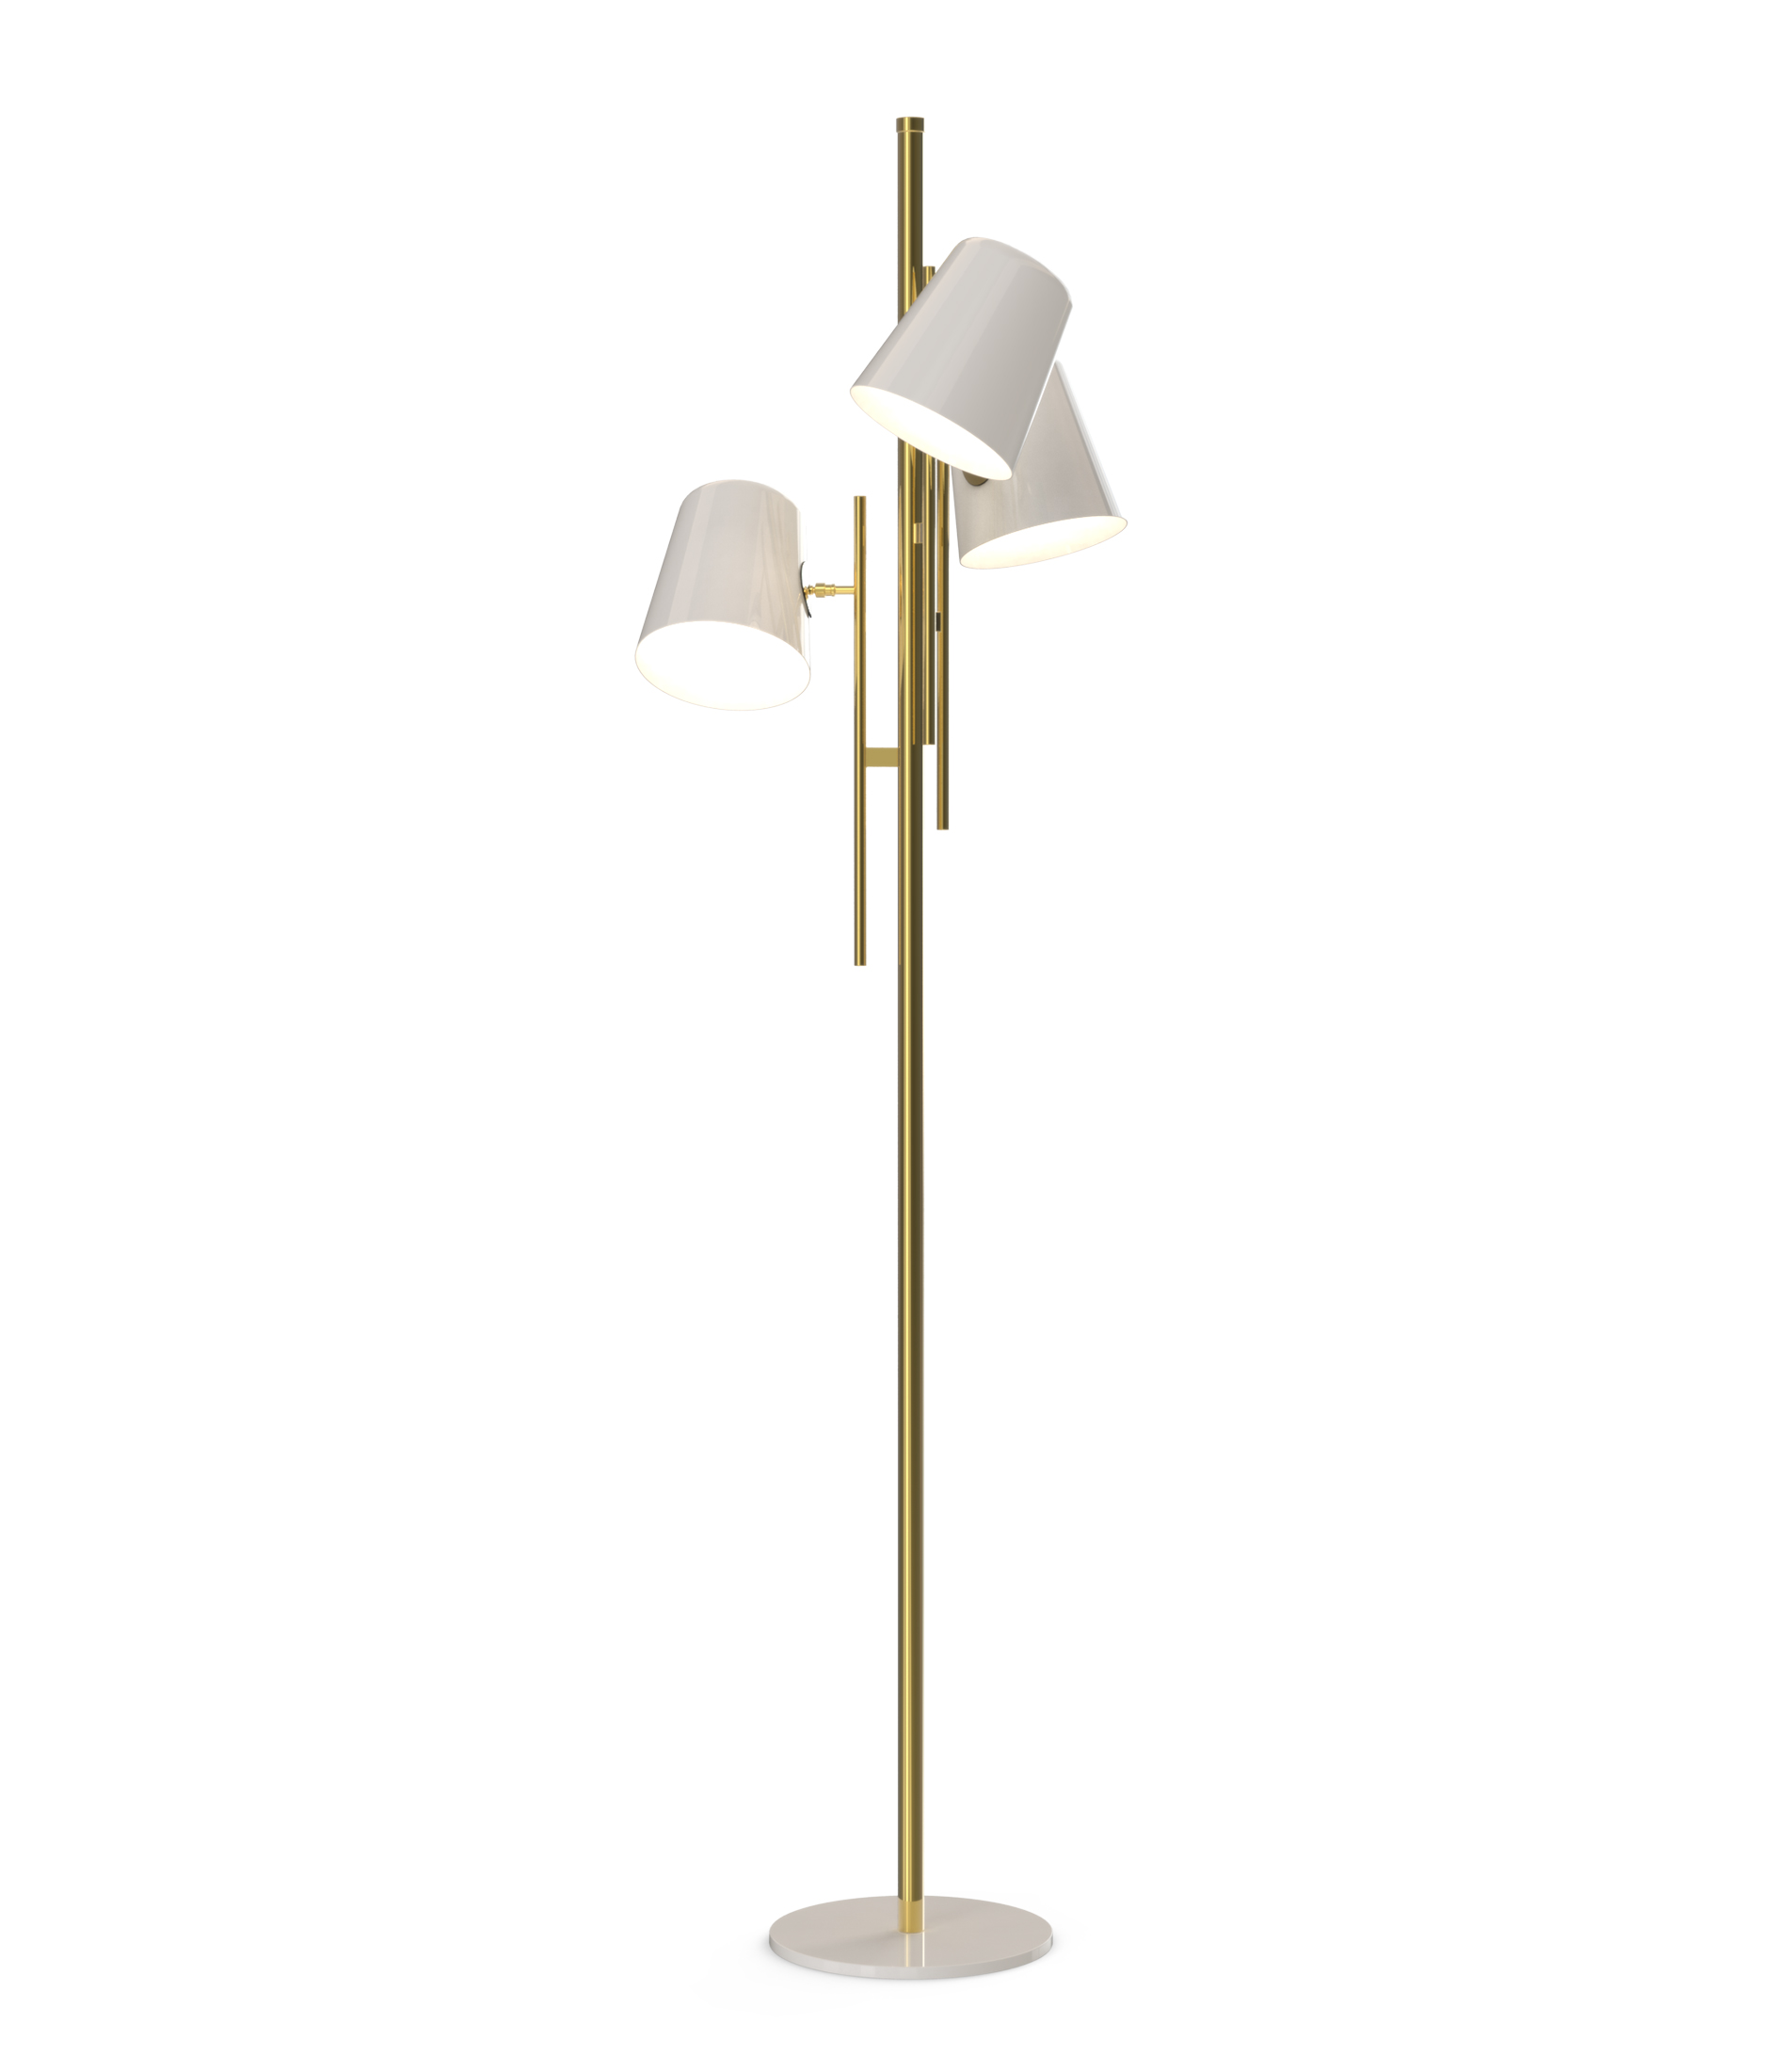 modern floor lamps cole floor lamp Celebrate The Legacy Of Nat King Cole With Cole Floor Lamp! Celebrate The Legacy Of Nat King Cole With Modern Floor Lamps5 1